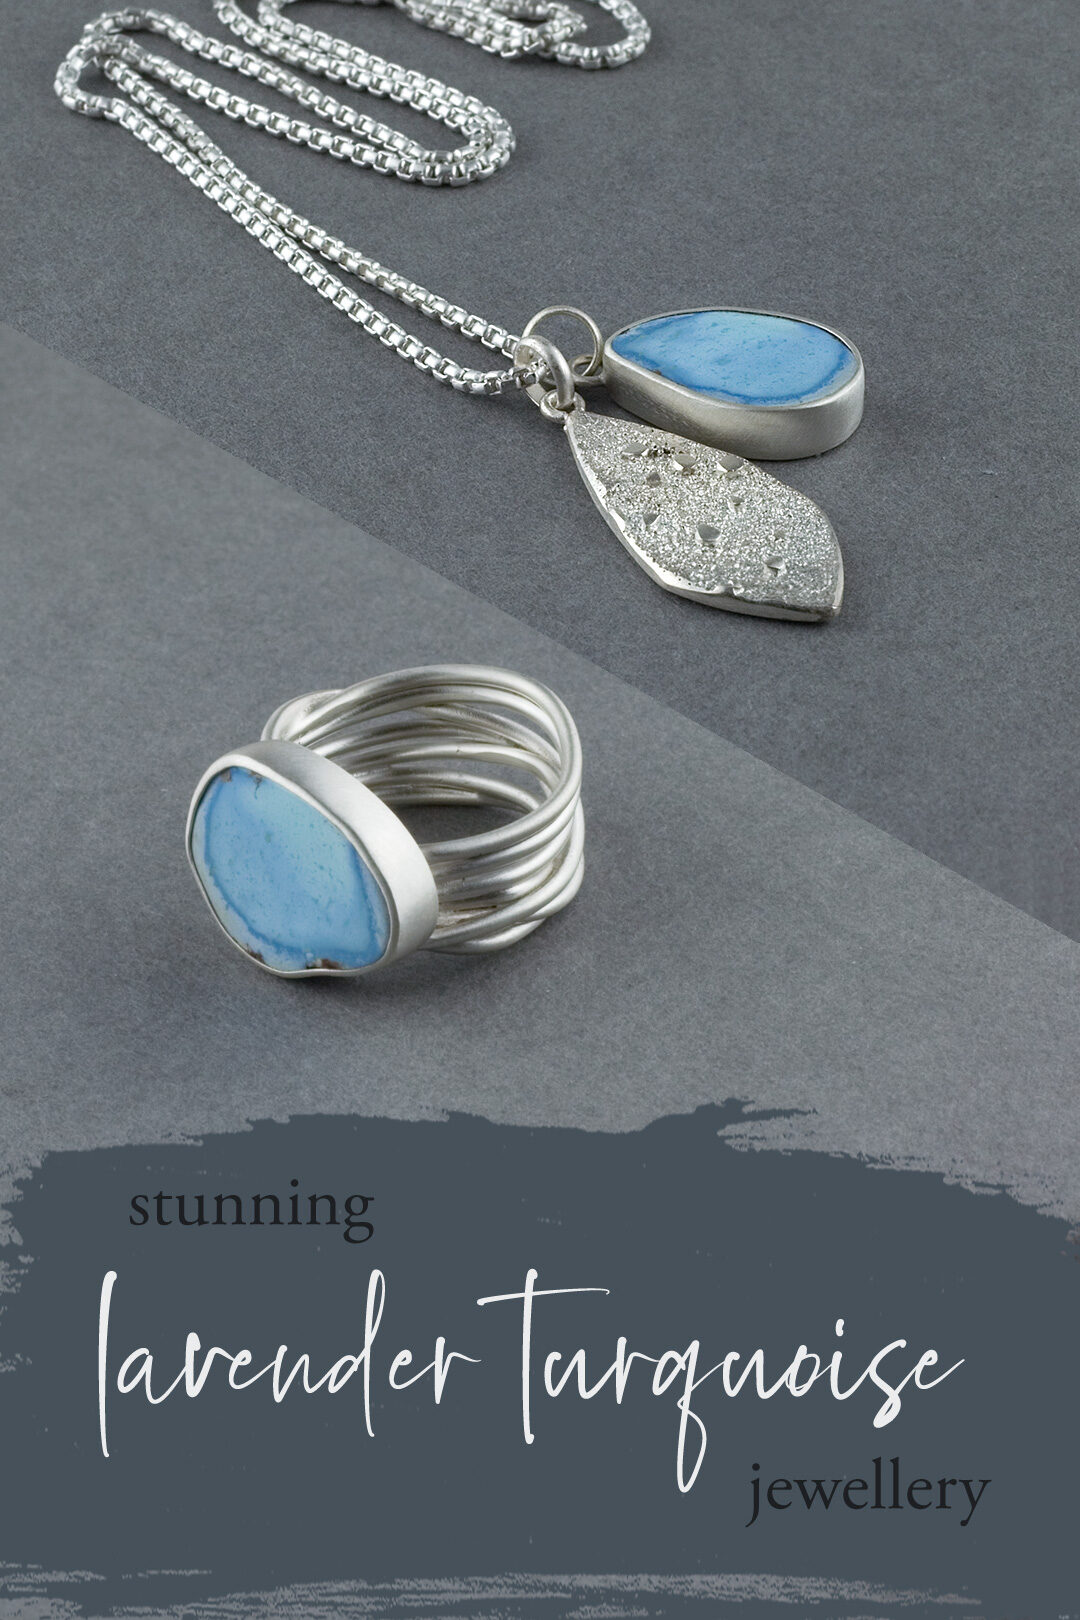 Lavender turquoise jewellery; ring and pendant